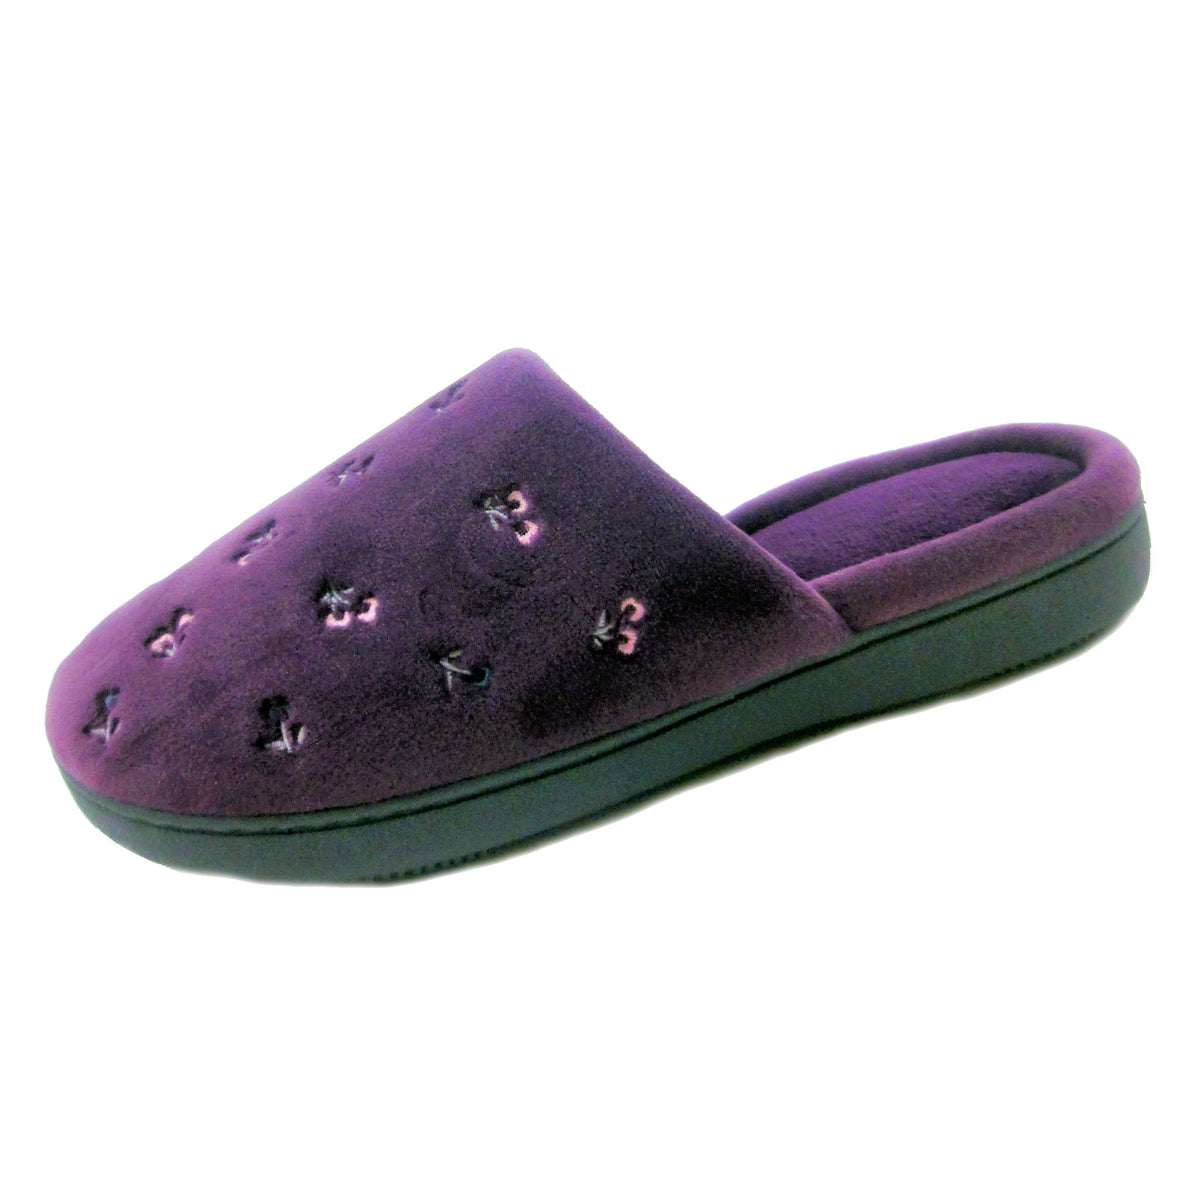 Isotoner Velour Clog With Embrodery